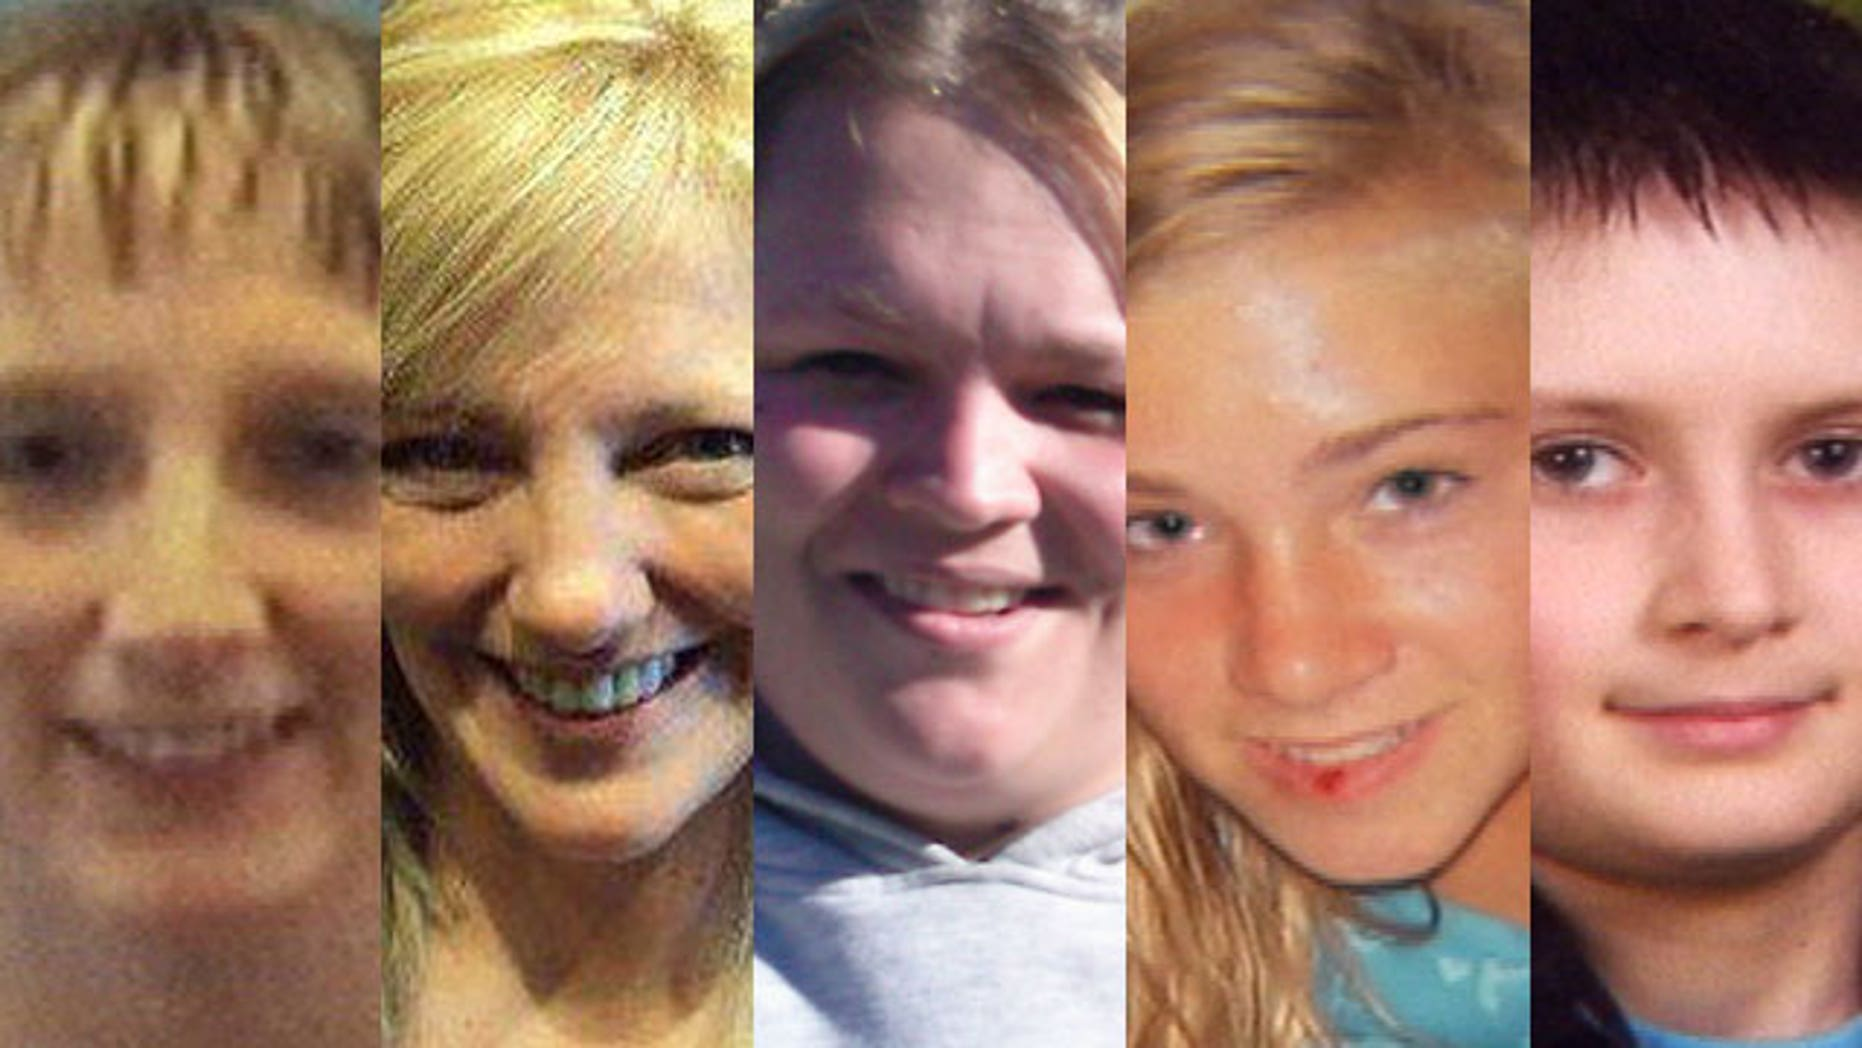 Investigators are continuing to question people and evaluate evidence in the search for Tina Herrmann, Stephanie Sprang, Amanda Strouse, Sarah Maynard, who was found on Sunday, and Kody Maynard.